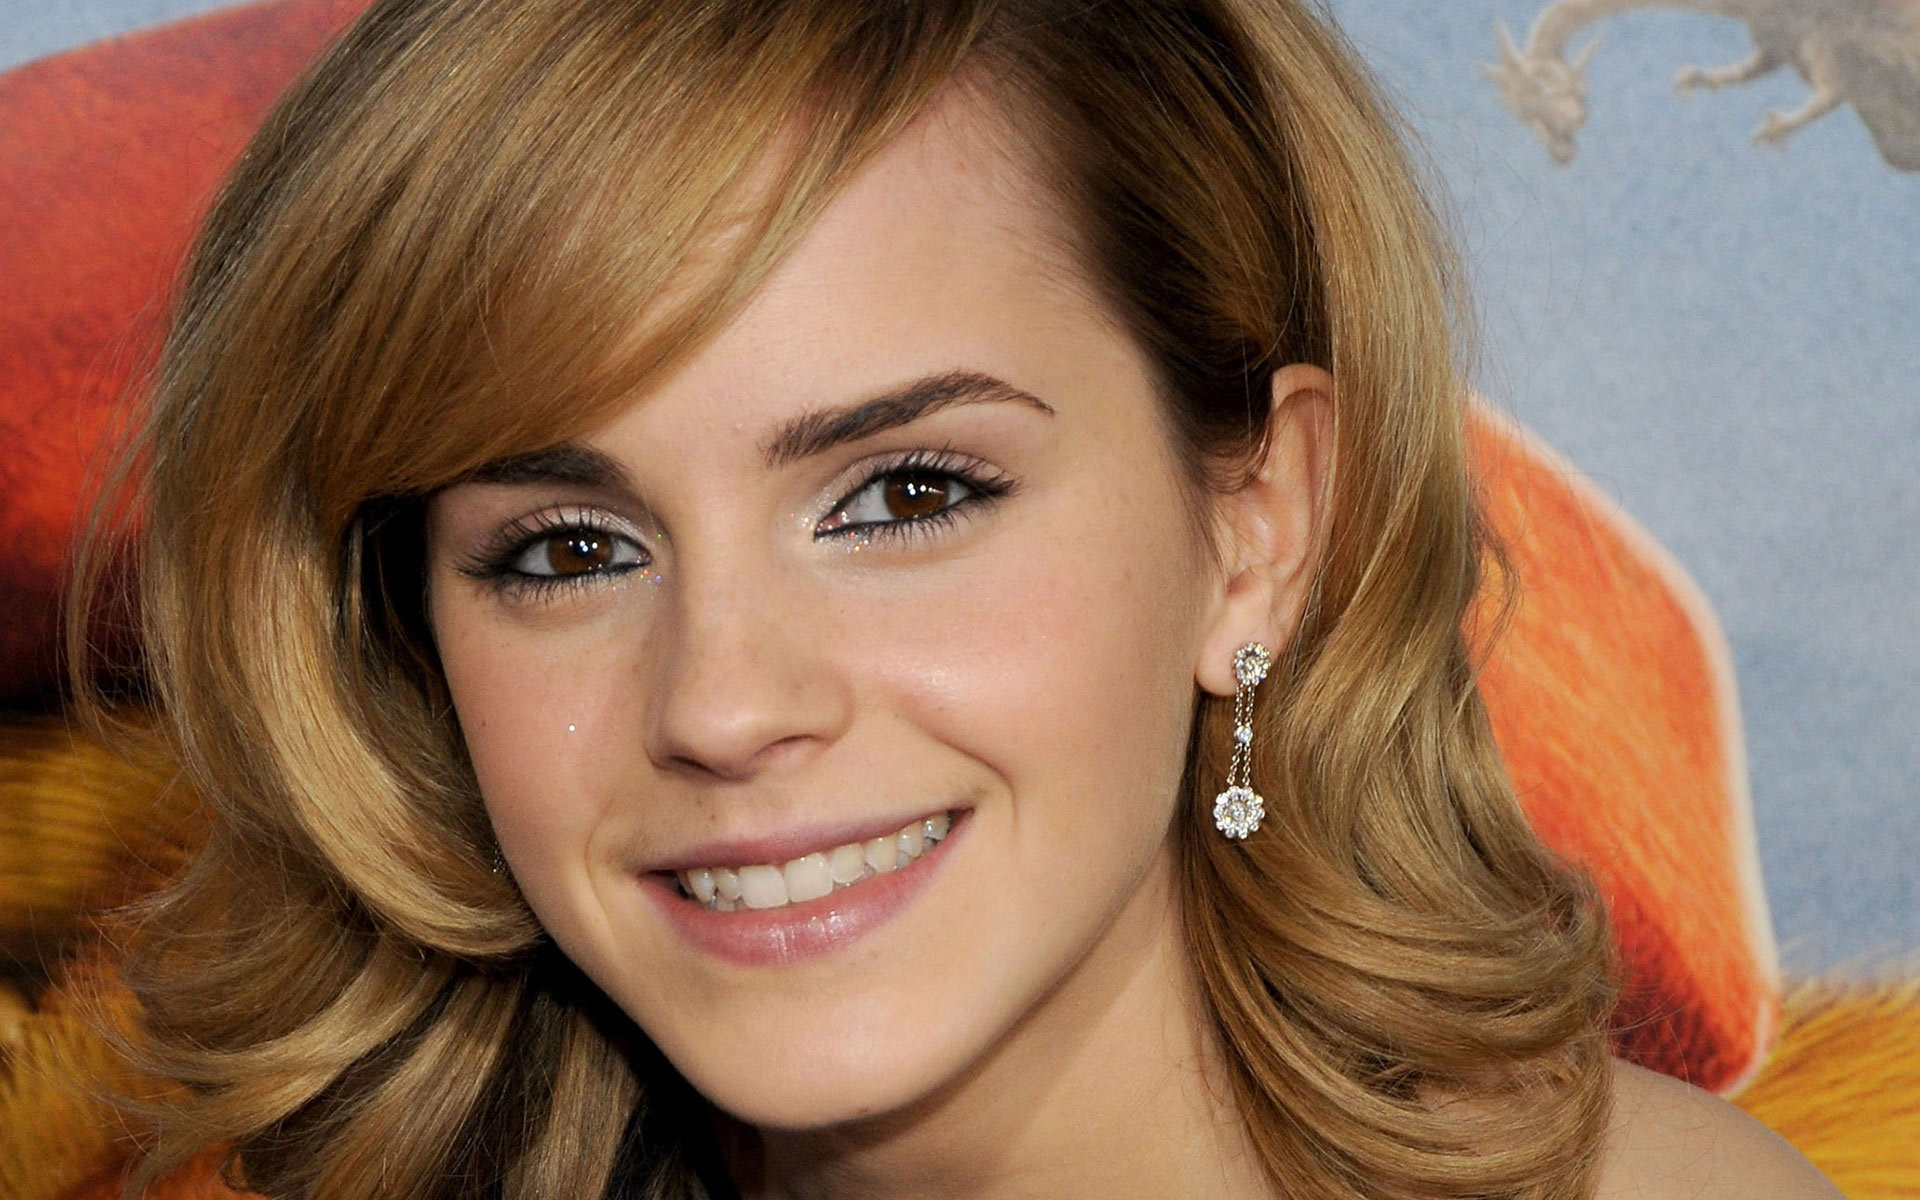 emma watson hd wallpapers, pictures, images